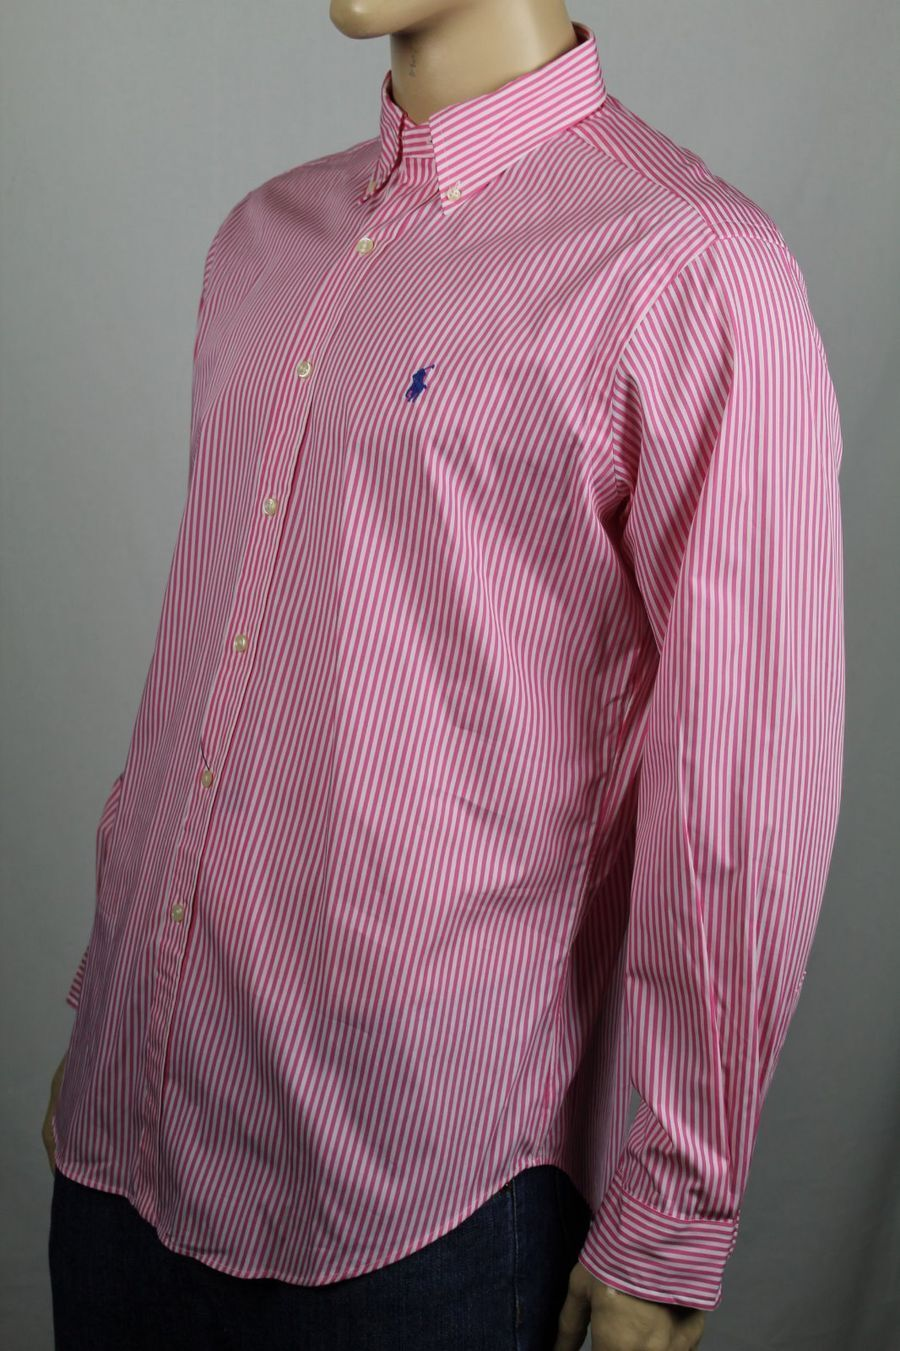 Ralph Lauren Pink White Striped Classic Dress Shirt bluee Pony NWT